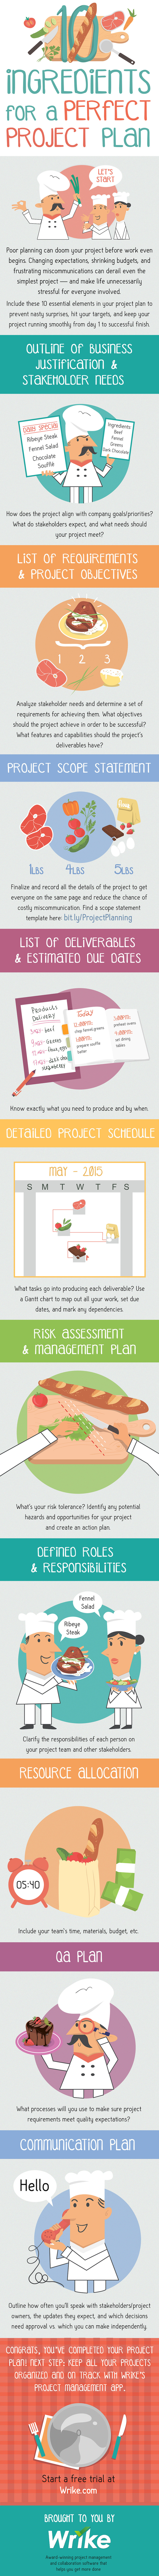 10 Essential Elements for the Perfect Project Plan - by Wrike project management software